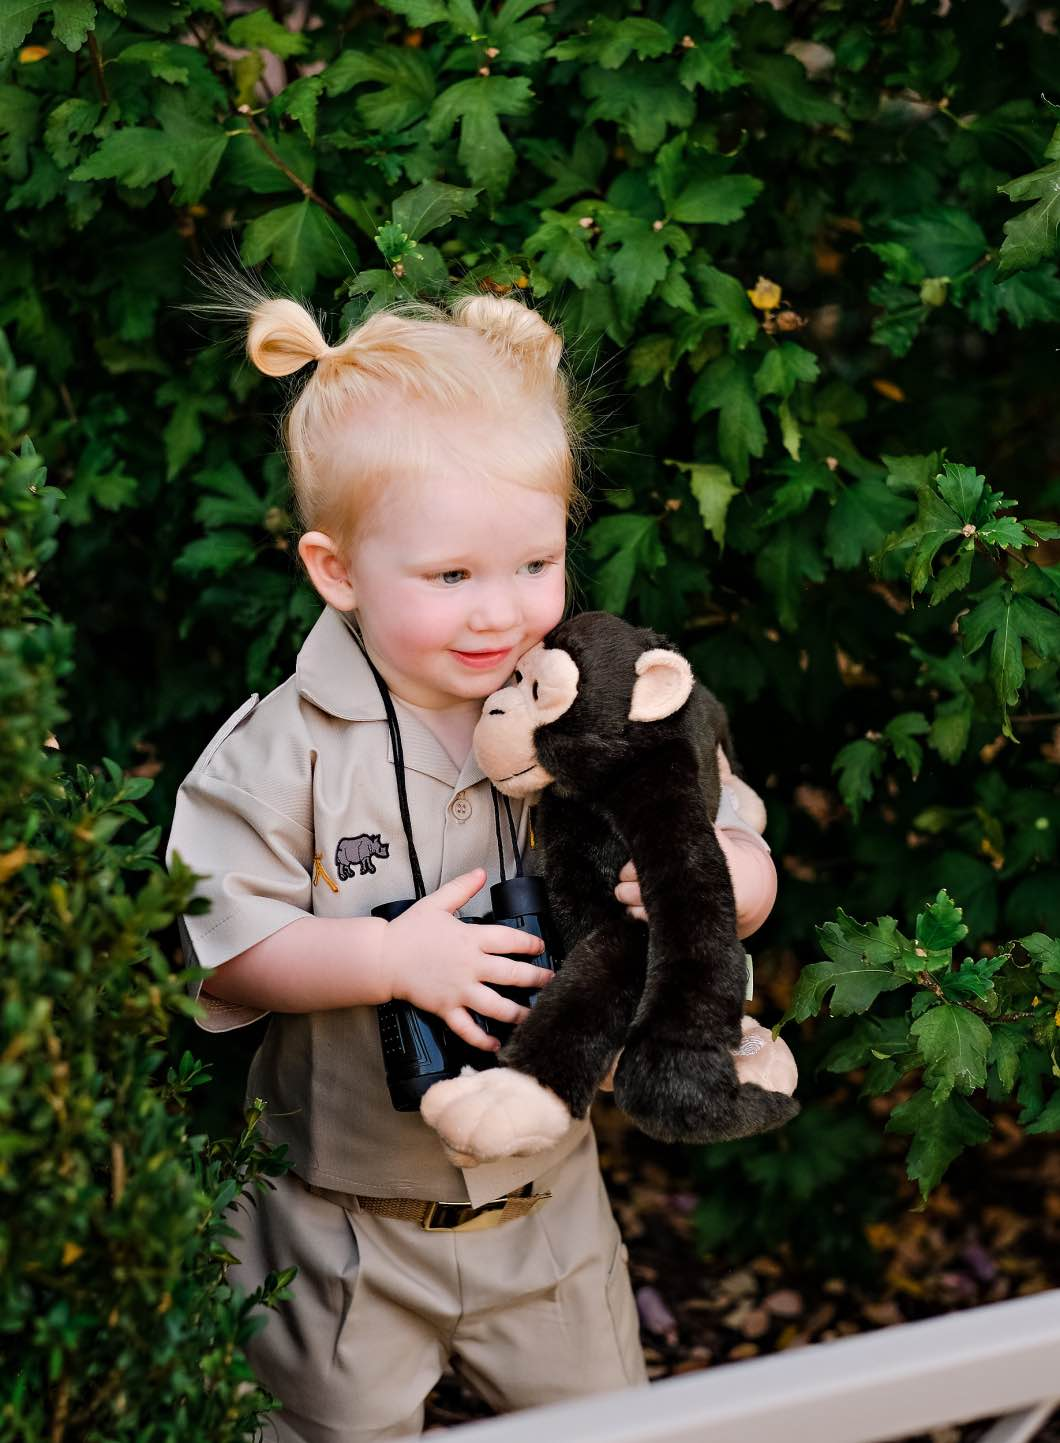 Jane Goodall - DIY Toddler Jane Goodall Costume by Atlanta mom blogger Happily Hughes by Atlanta mom blogger Happily Hughes